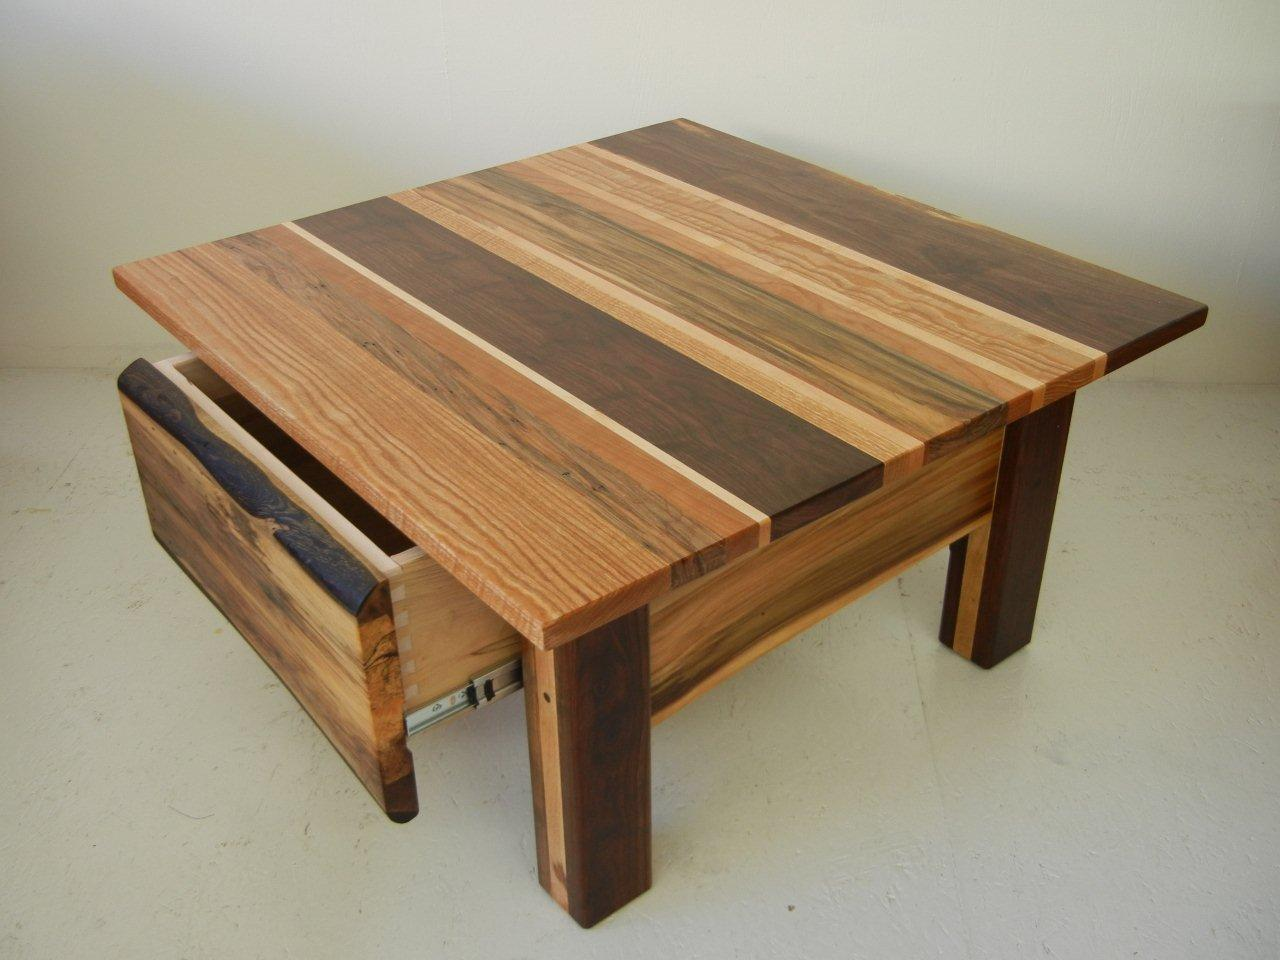 Rustic coffee table futon designs for Rustic coffee table